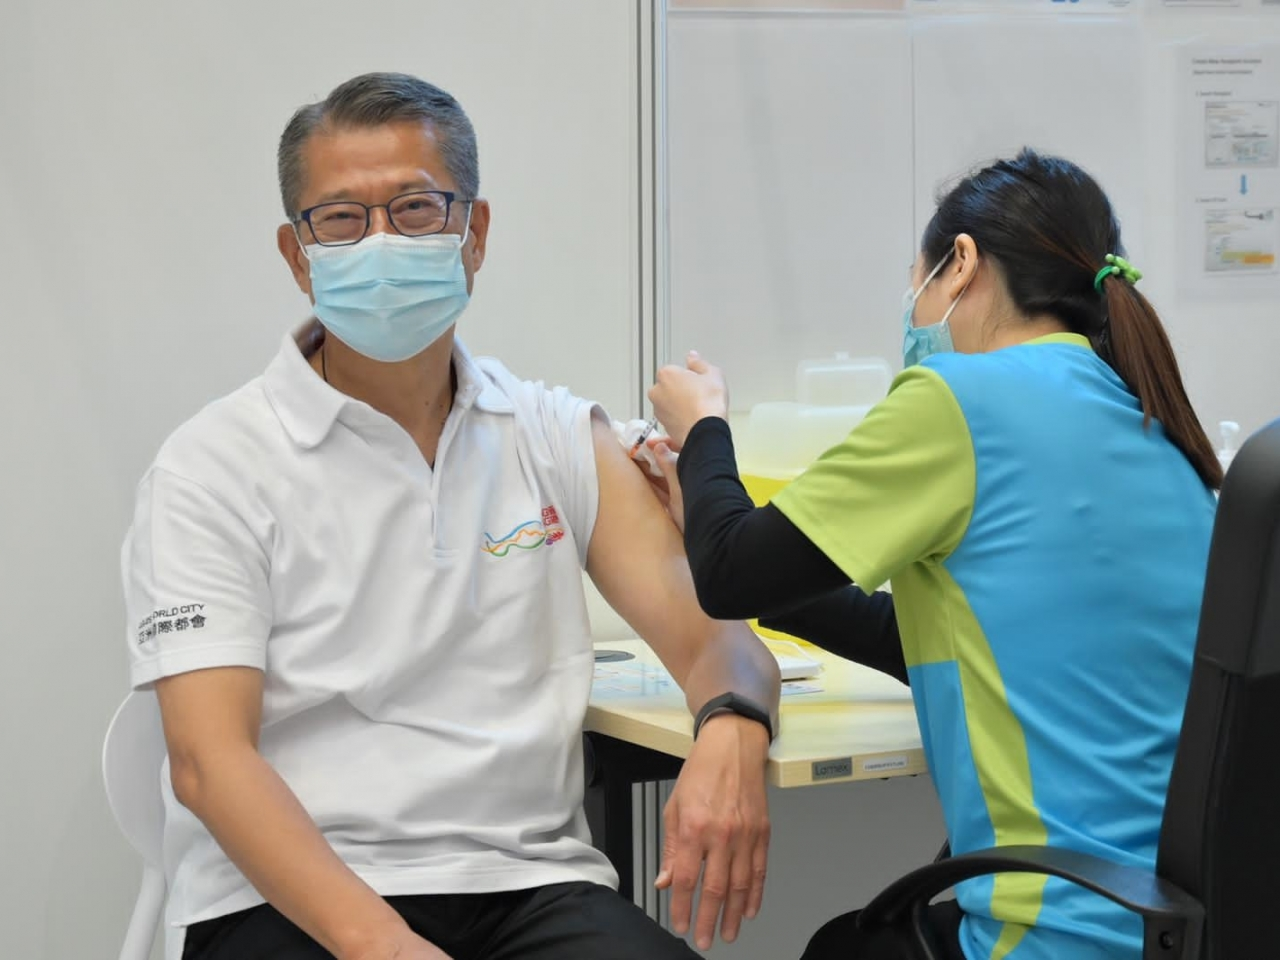 Low vaccination rate may harm economy: Paul Chan